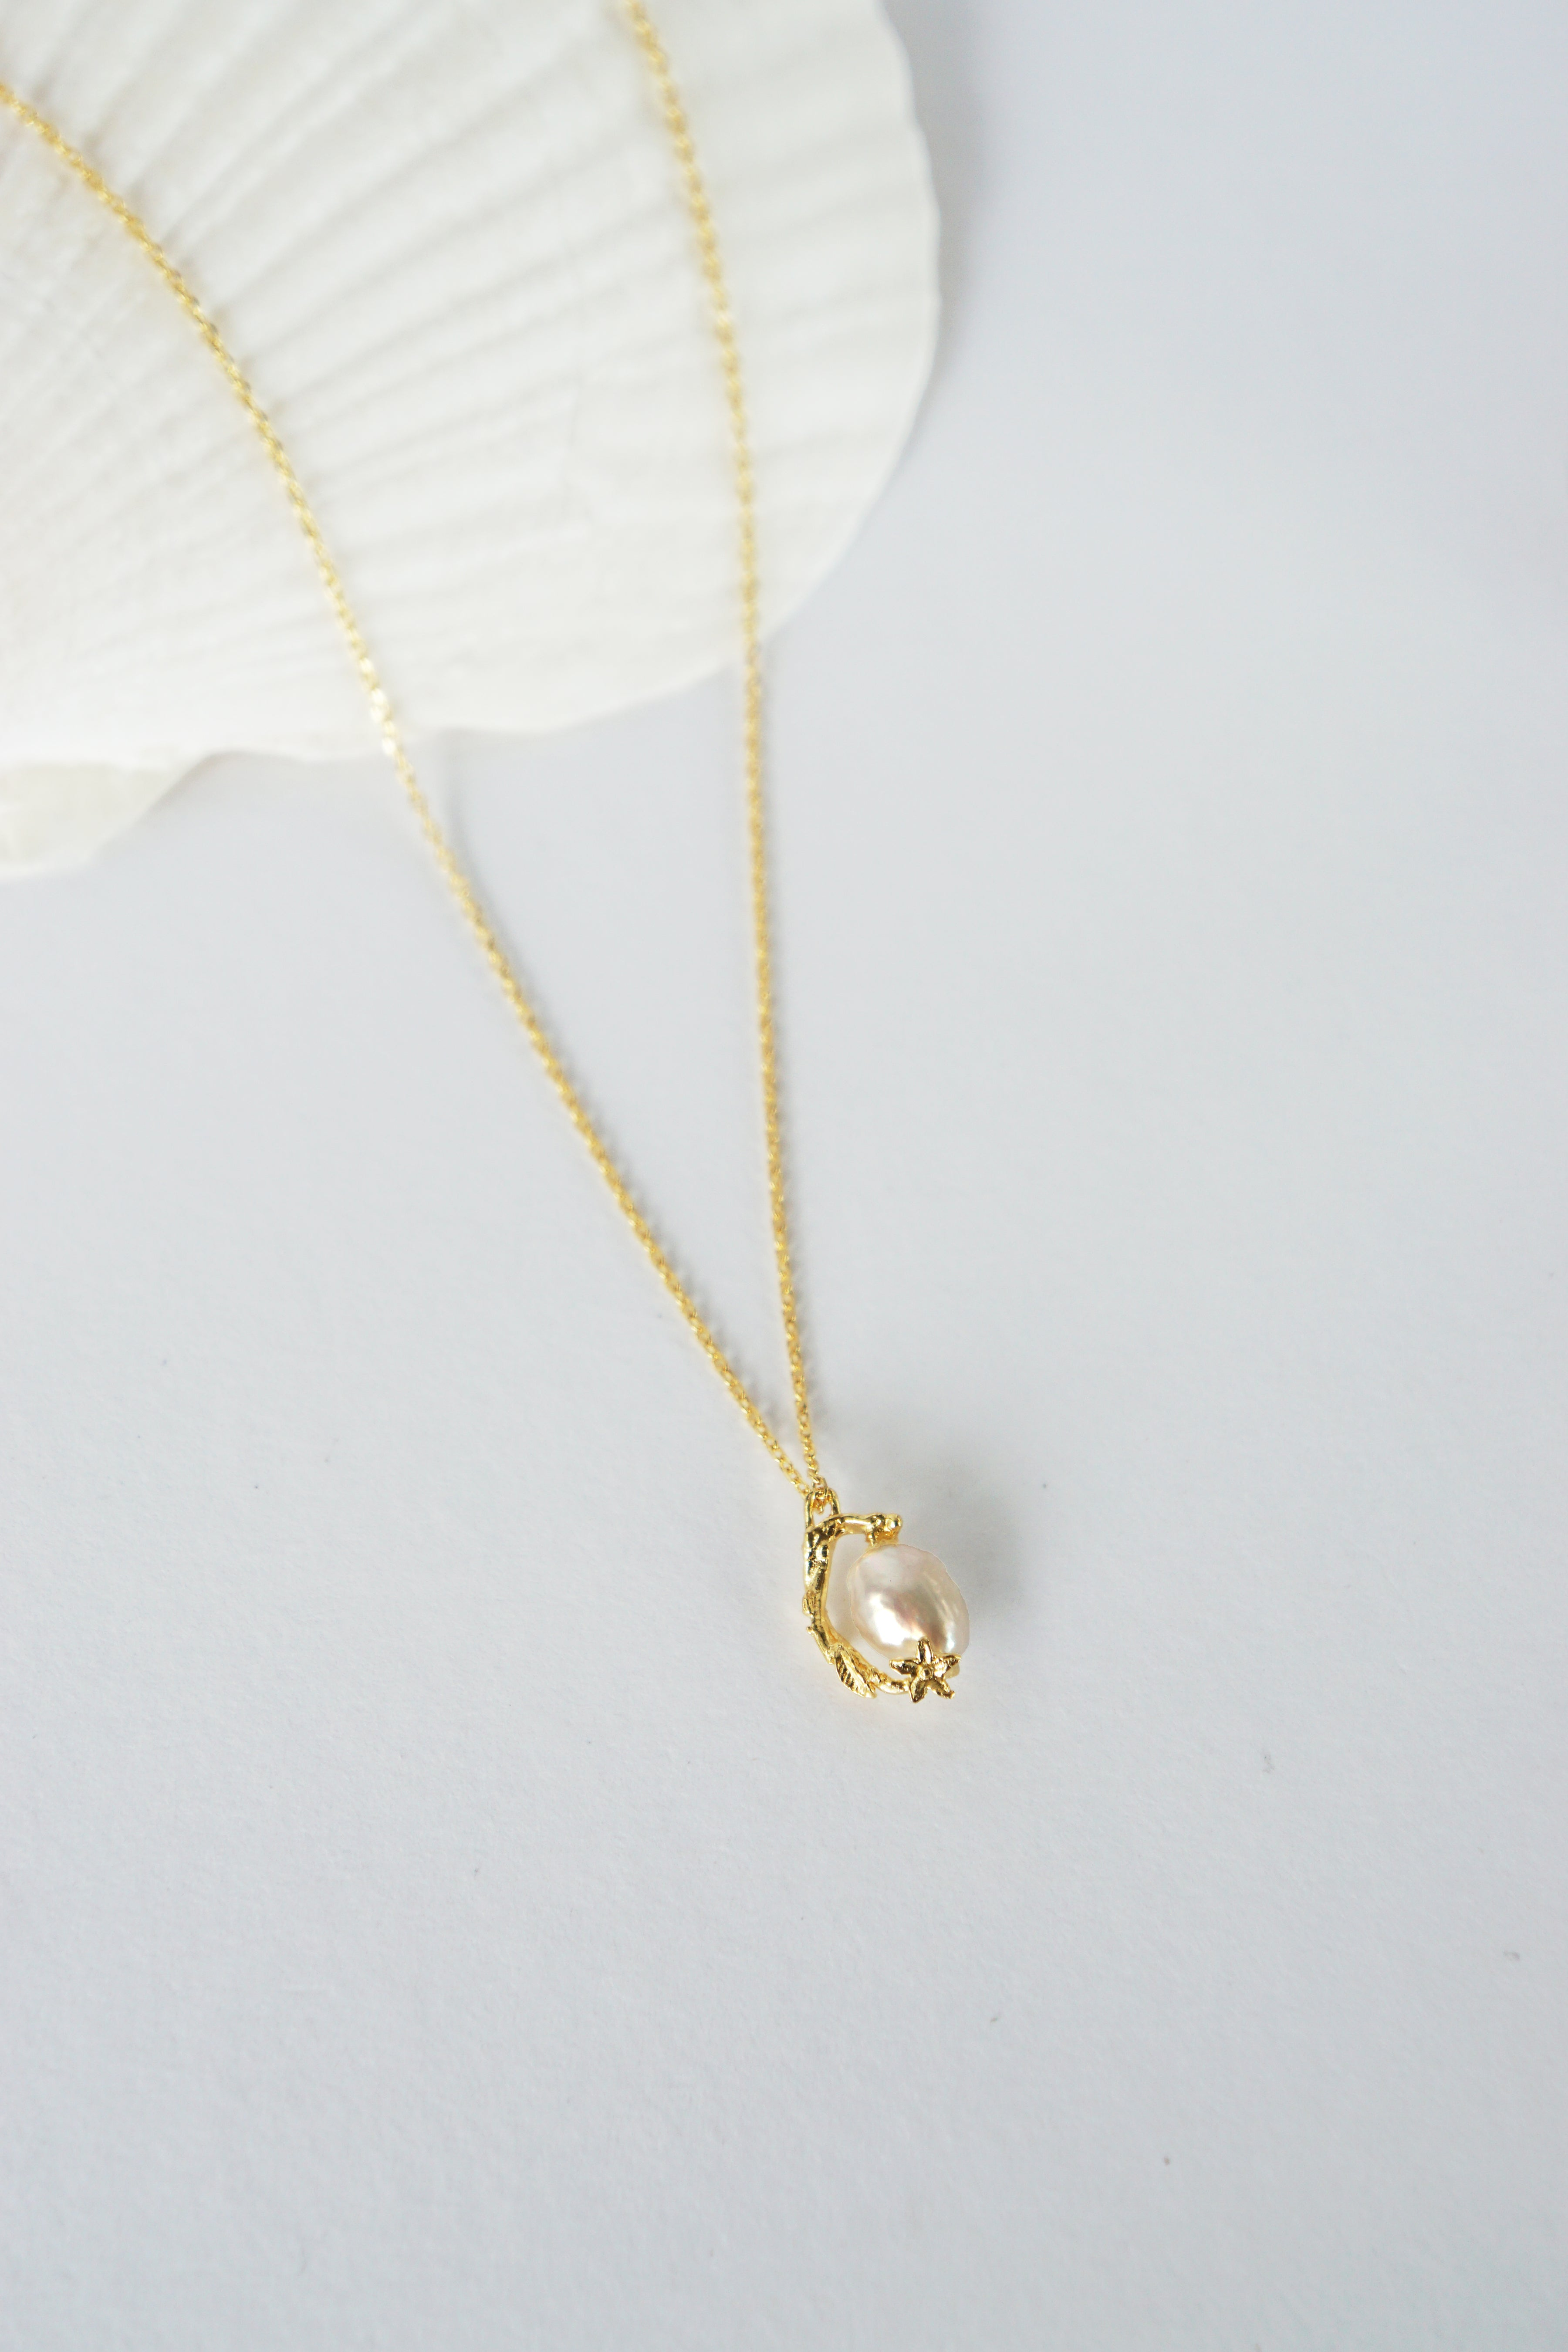 Under The Sea Necklace in Gold